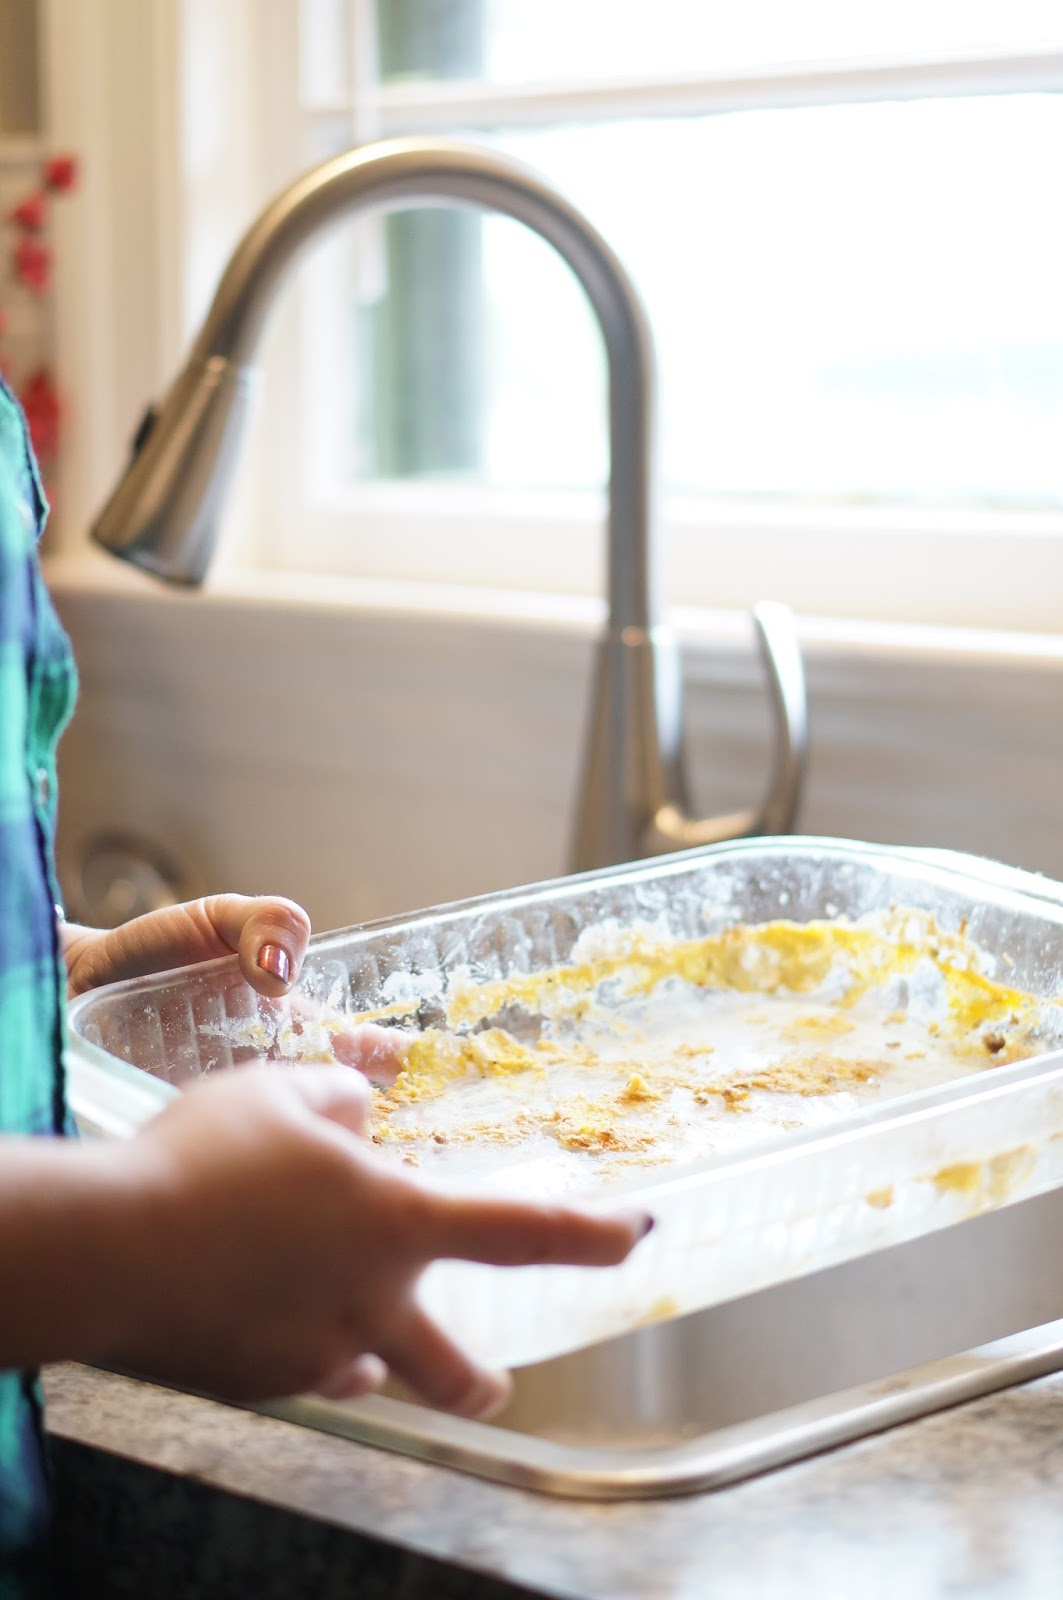 Rebecca Lately Breakfast Casserole Cleaning Up With Scotch-Brite® Scrubbing Dish Clothes